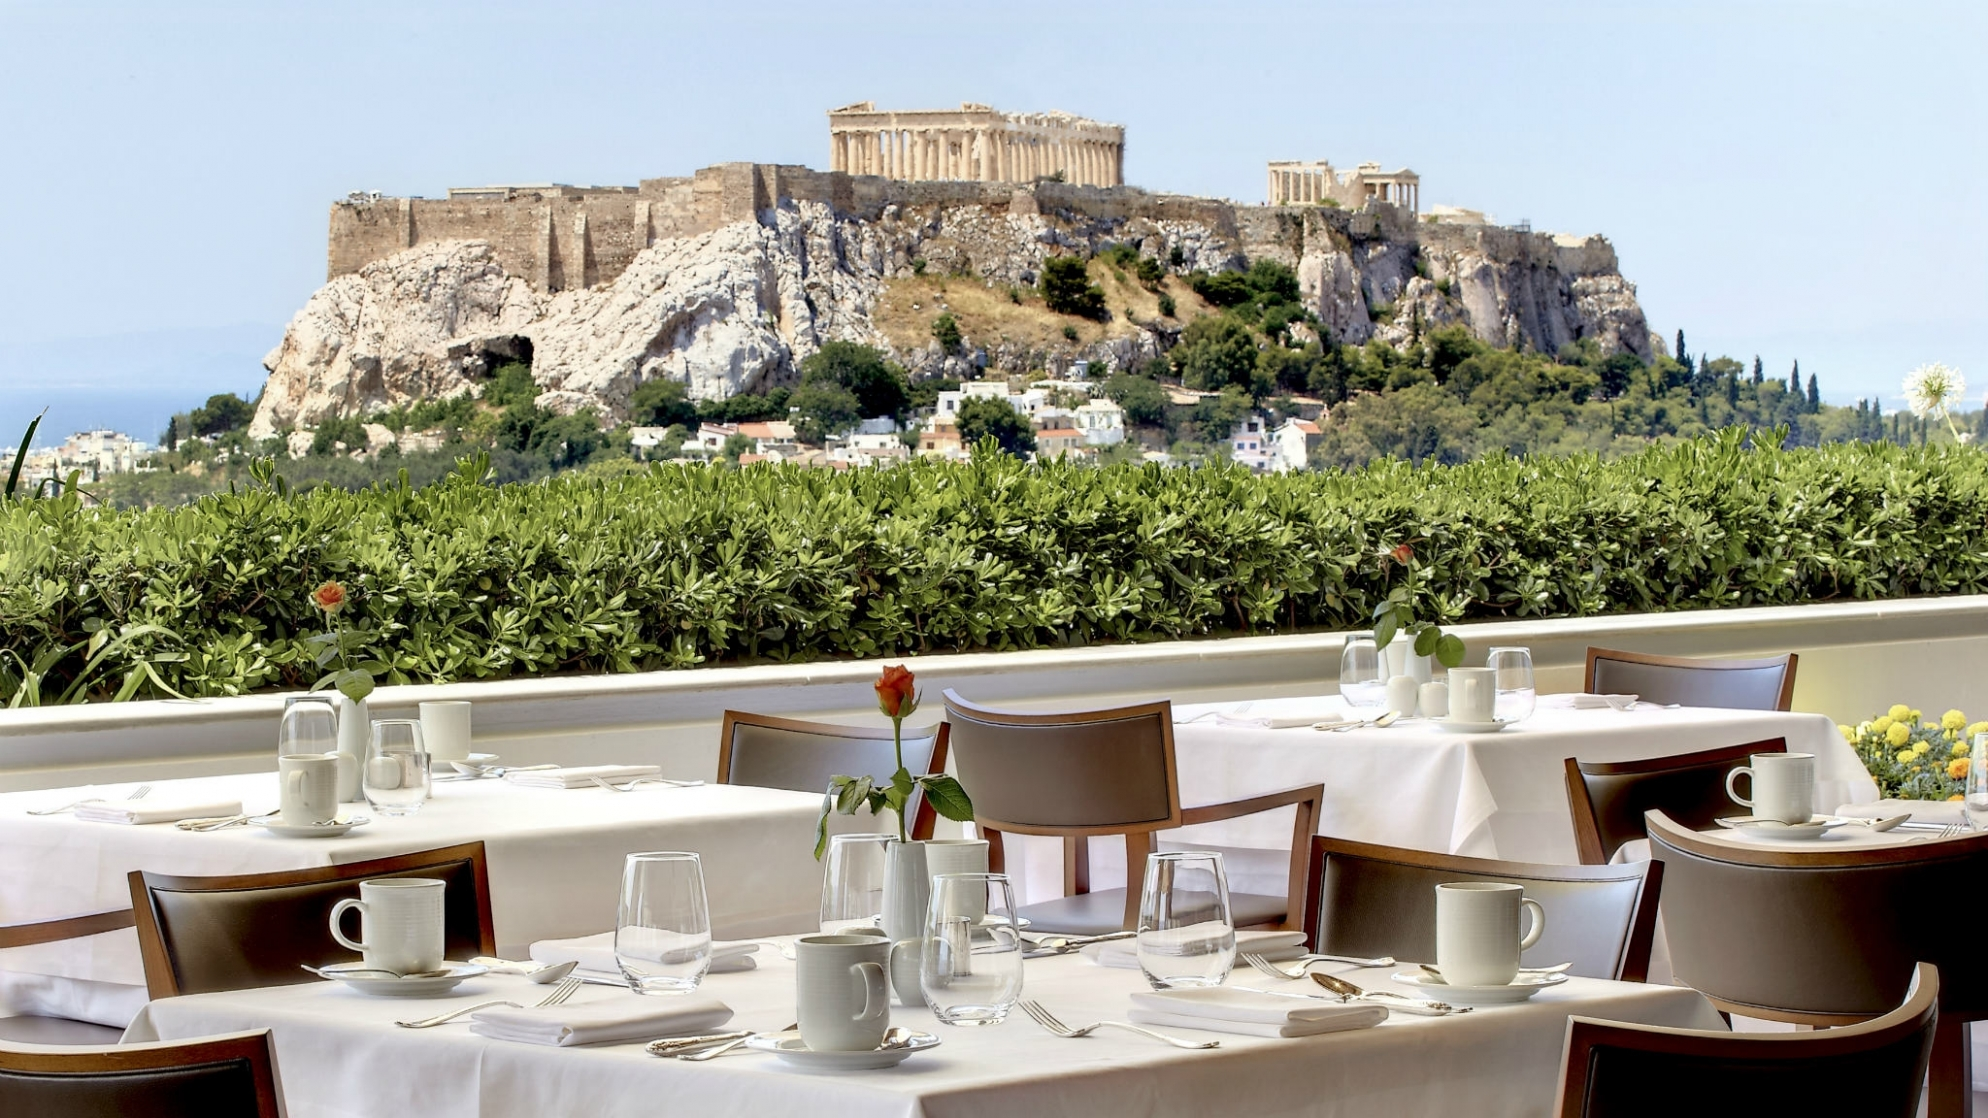 Enjoy lunch with views to the Acropolis from the roof-top GB Roof Garden Restaurant at Hotel Grande Bretagne Athens